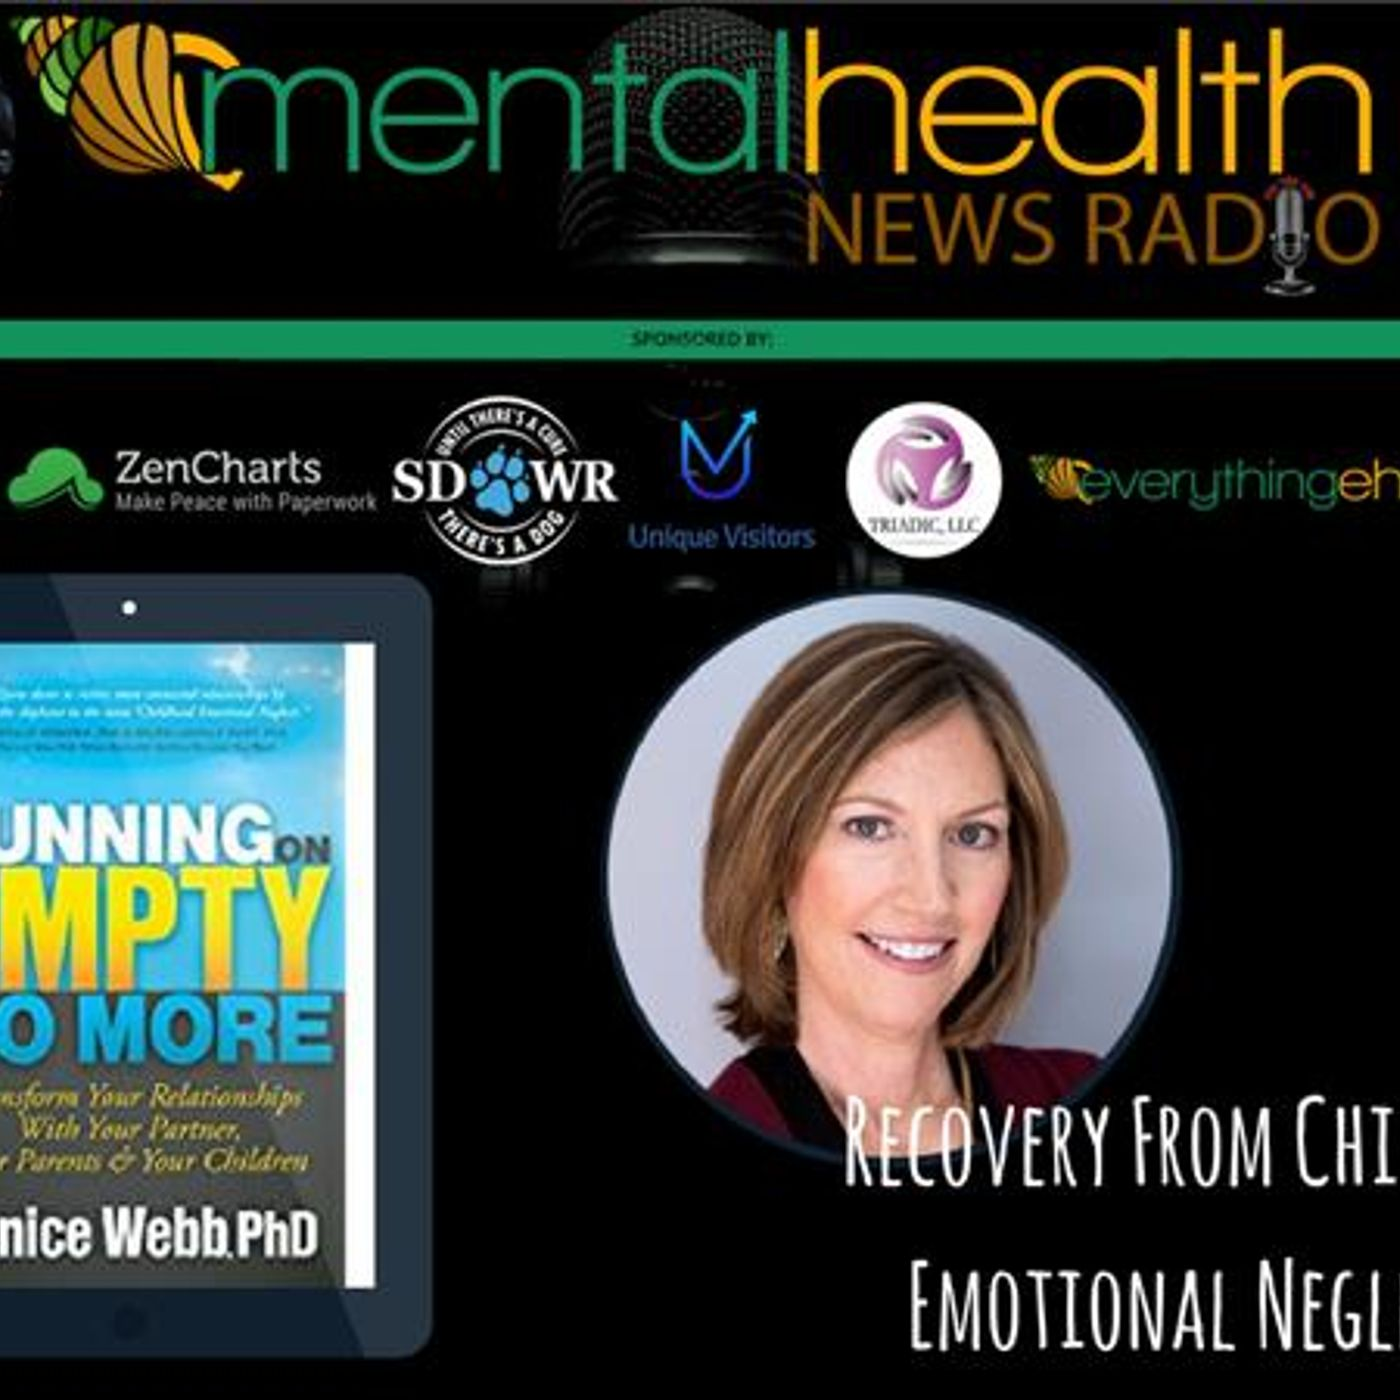 Mental Health News Radio - Recovery From Childhood Emotional Neglect with Dr. Jonice Webb